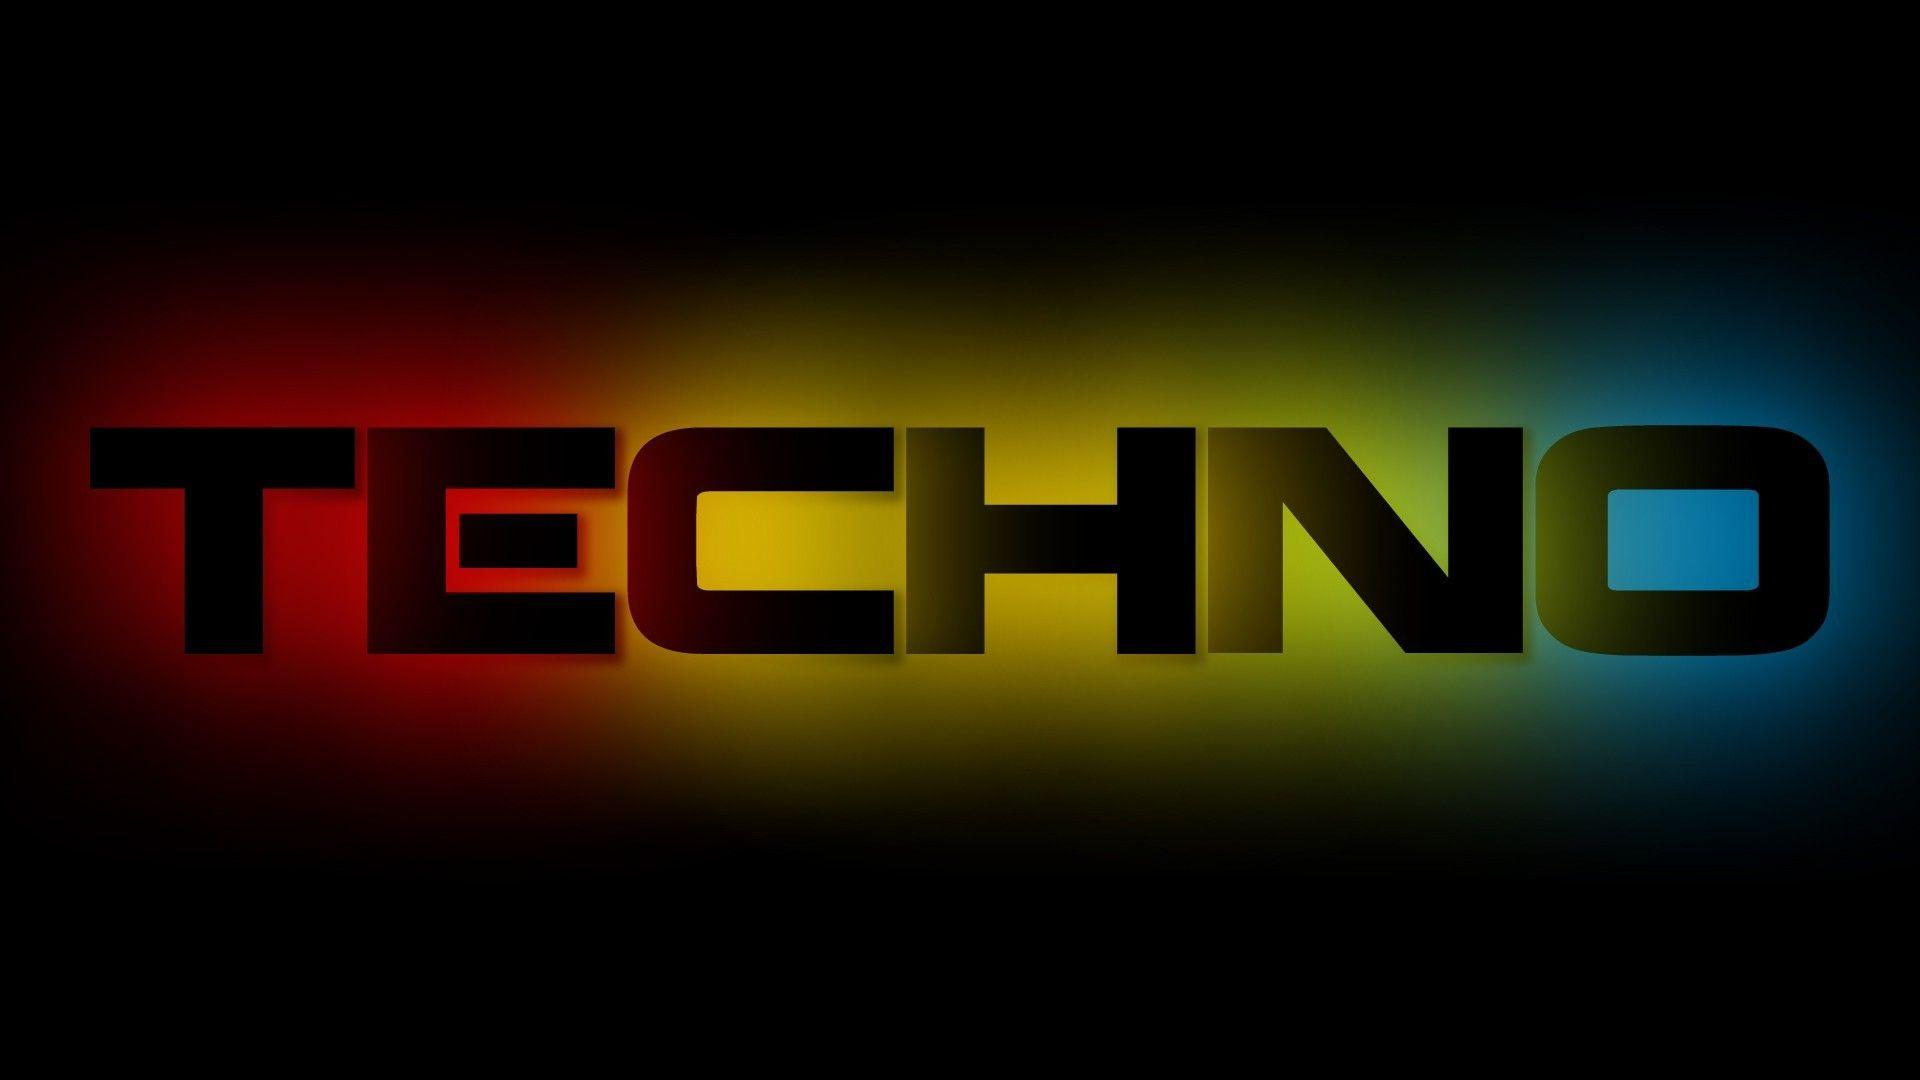 Techno Music Wallpapers 1920x1080